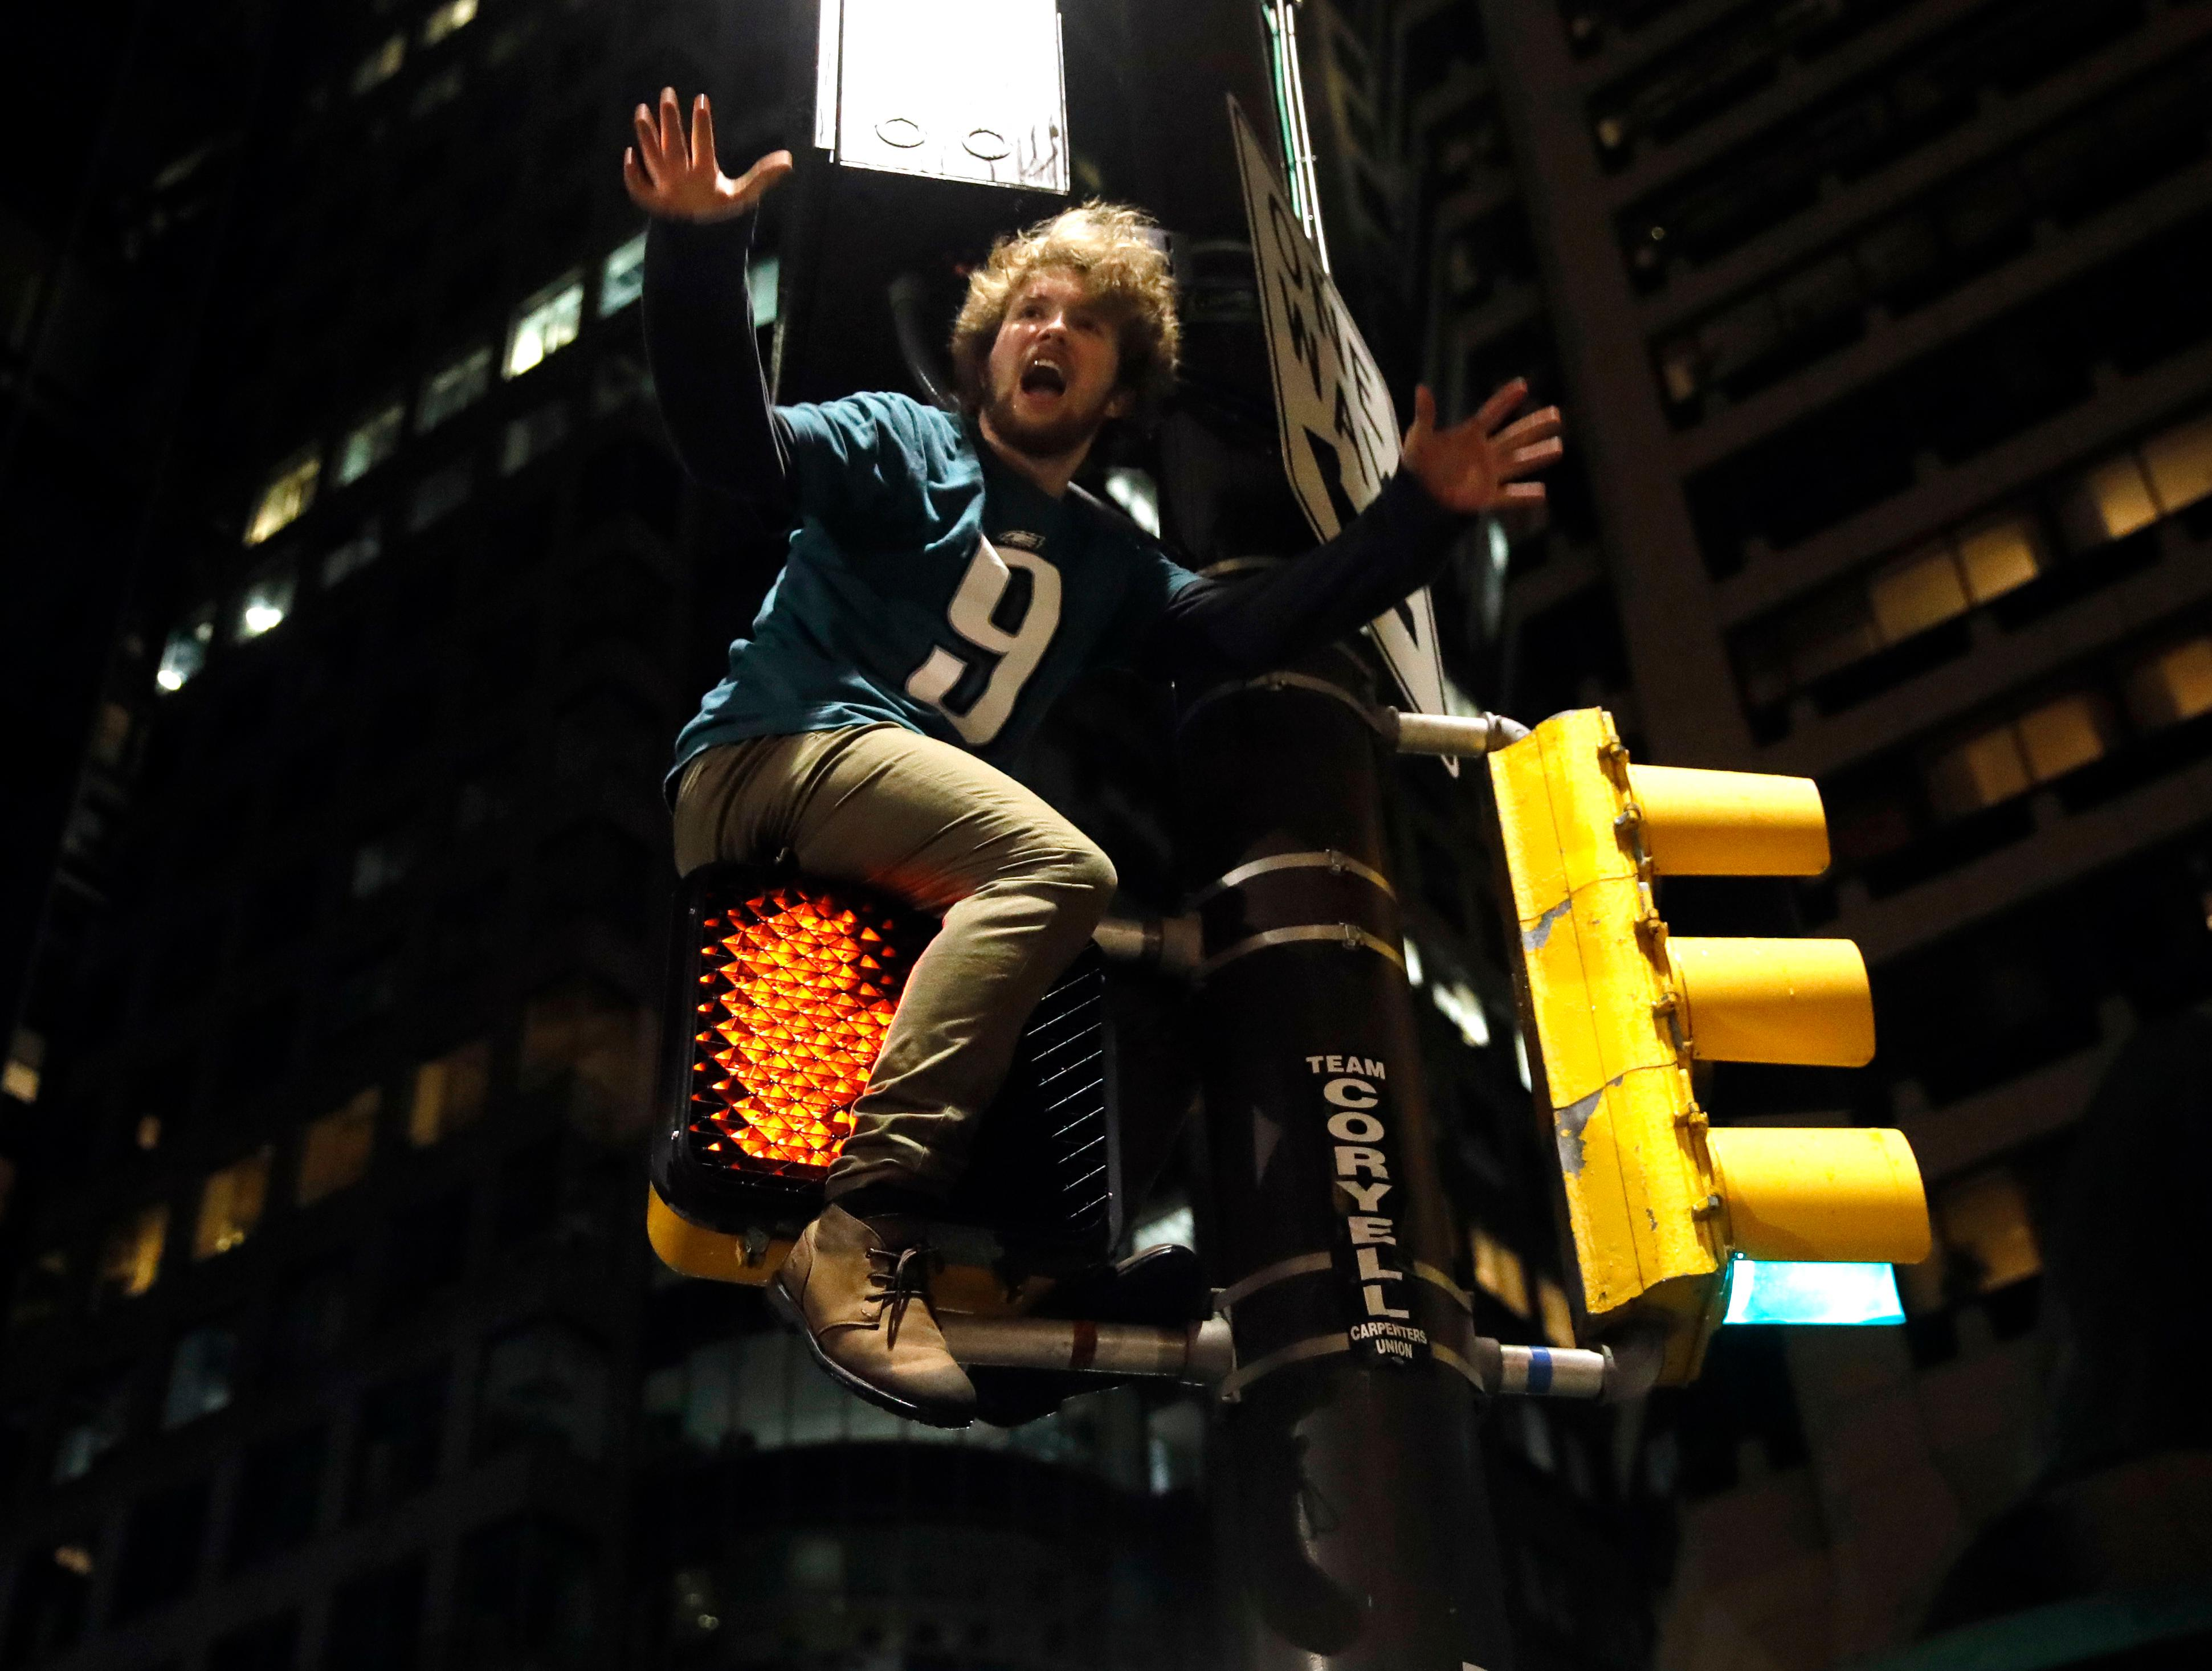 A Philadelphia Eagles fan celebrates the team's victory in the NFL Super Bowl 52 between the Philadelphia Eagles and the New England Patriots, Sunday, Feb. 4, 2018, in downtown Philadelphia. (AP Photo/Matt Rourke)